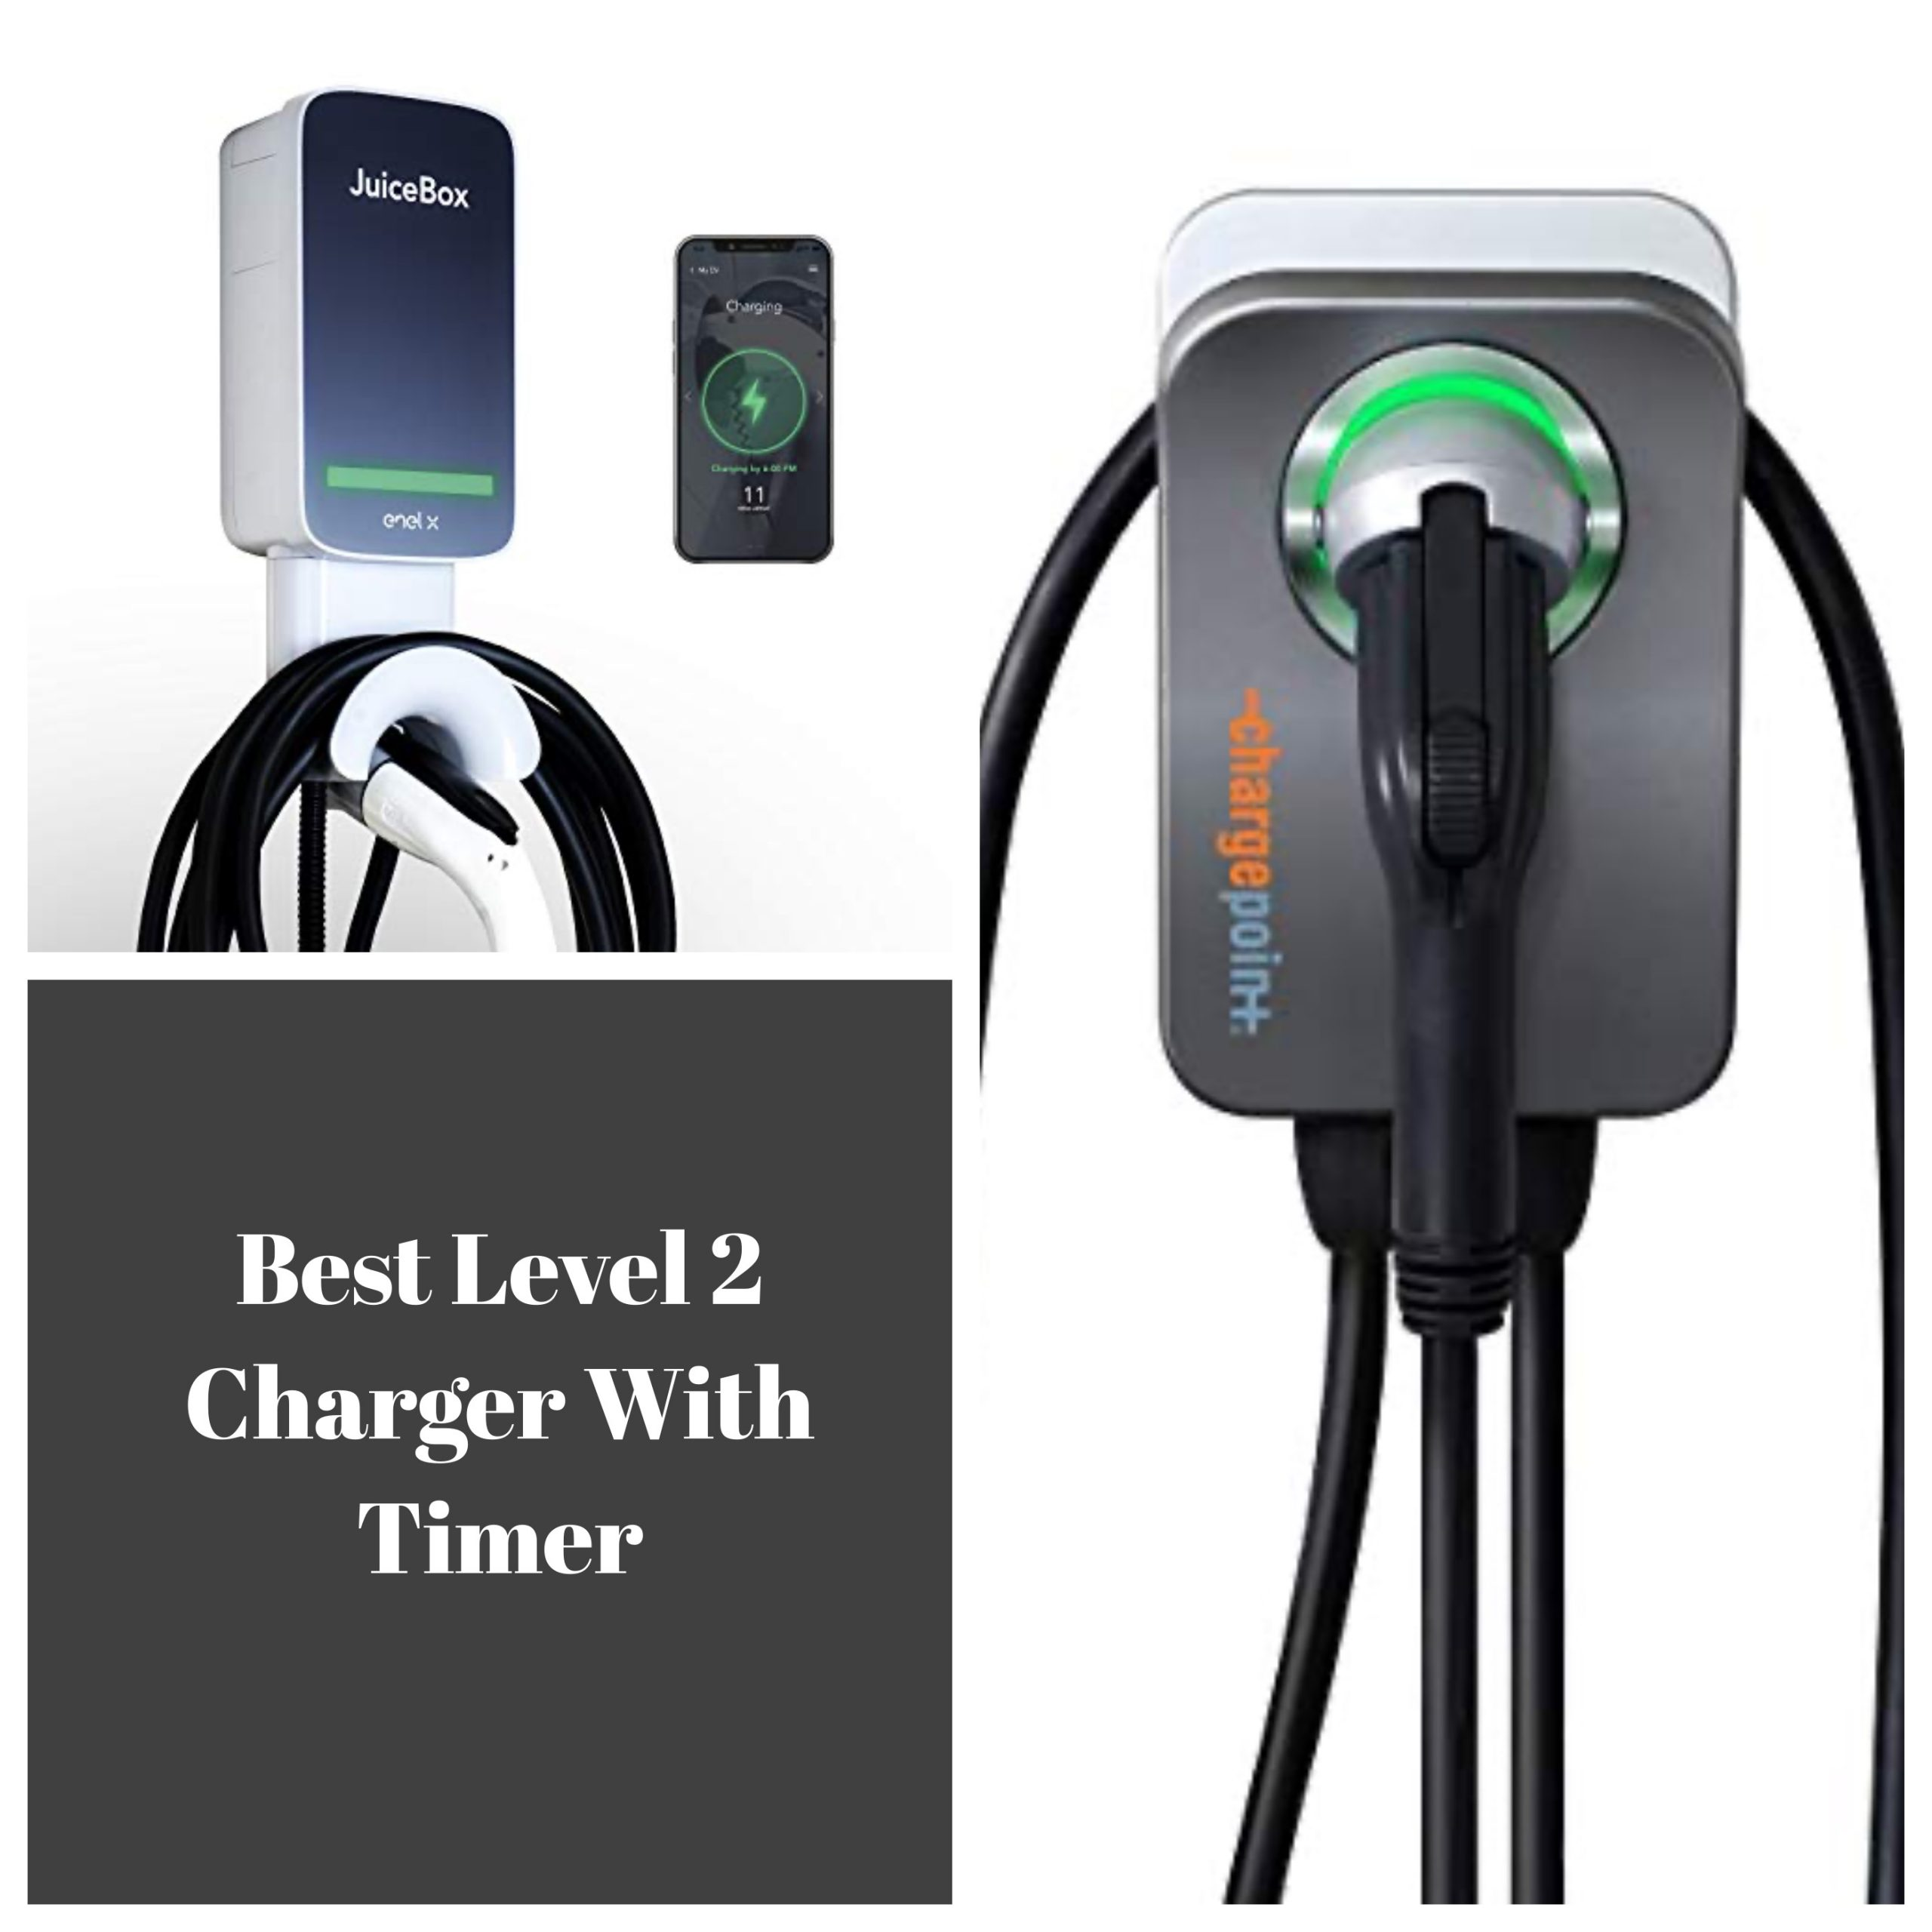 Level 2 Charger With Timer